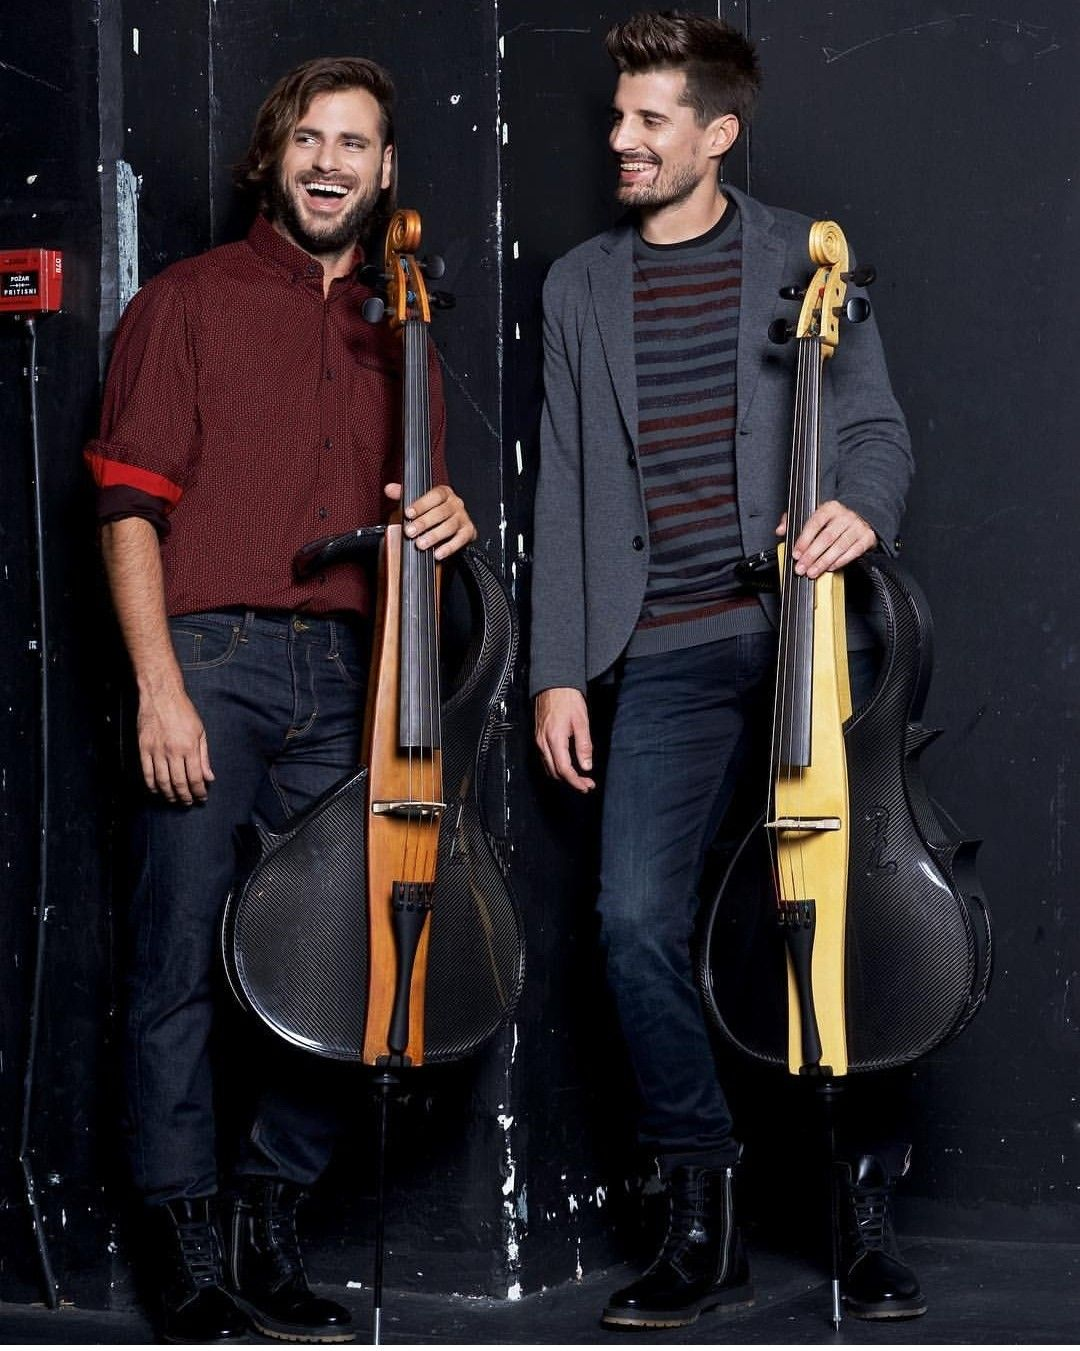 2Cellos    Luka Sulic and Stjepan Hauser | Music in 2019